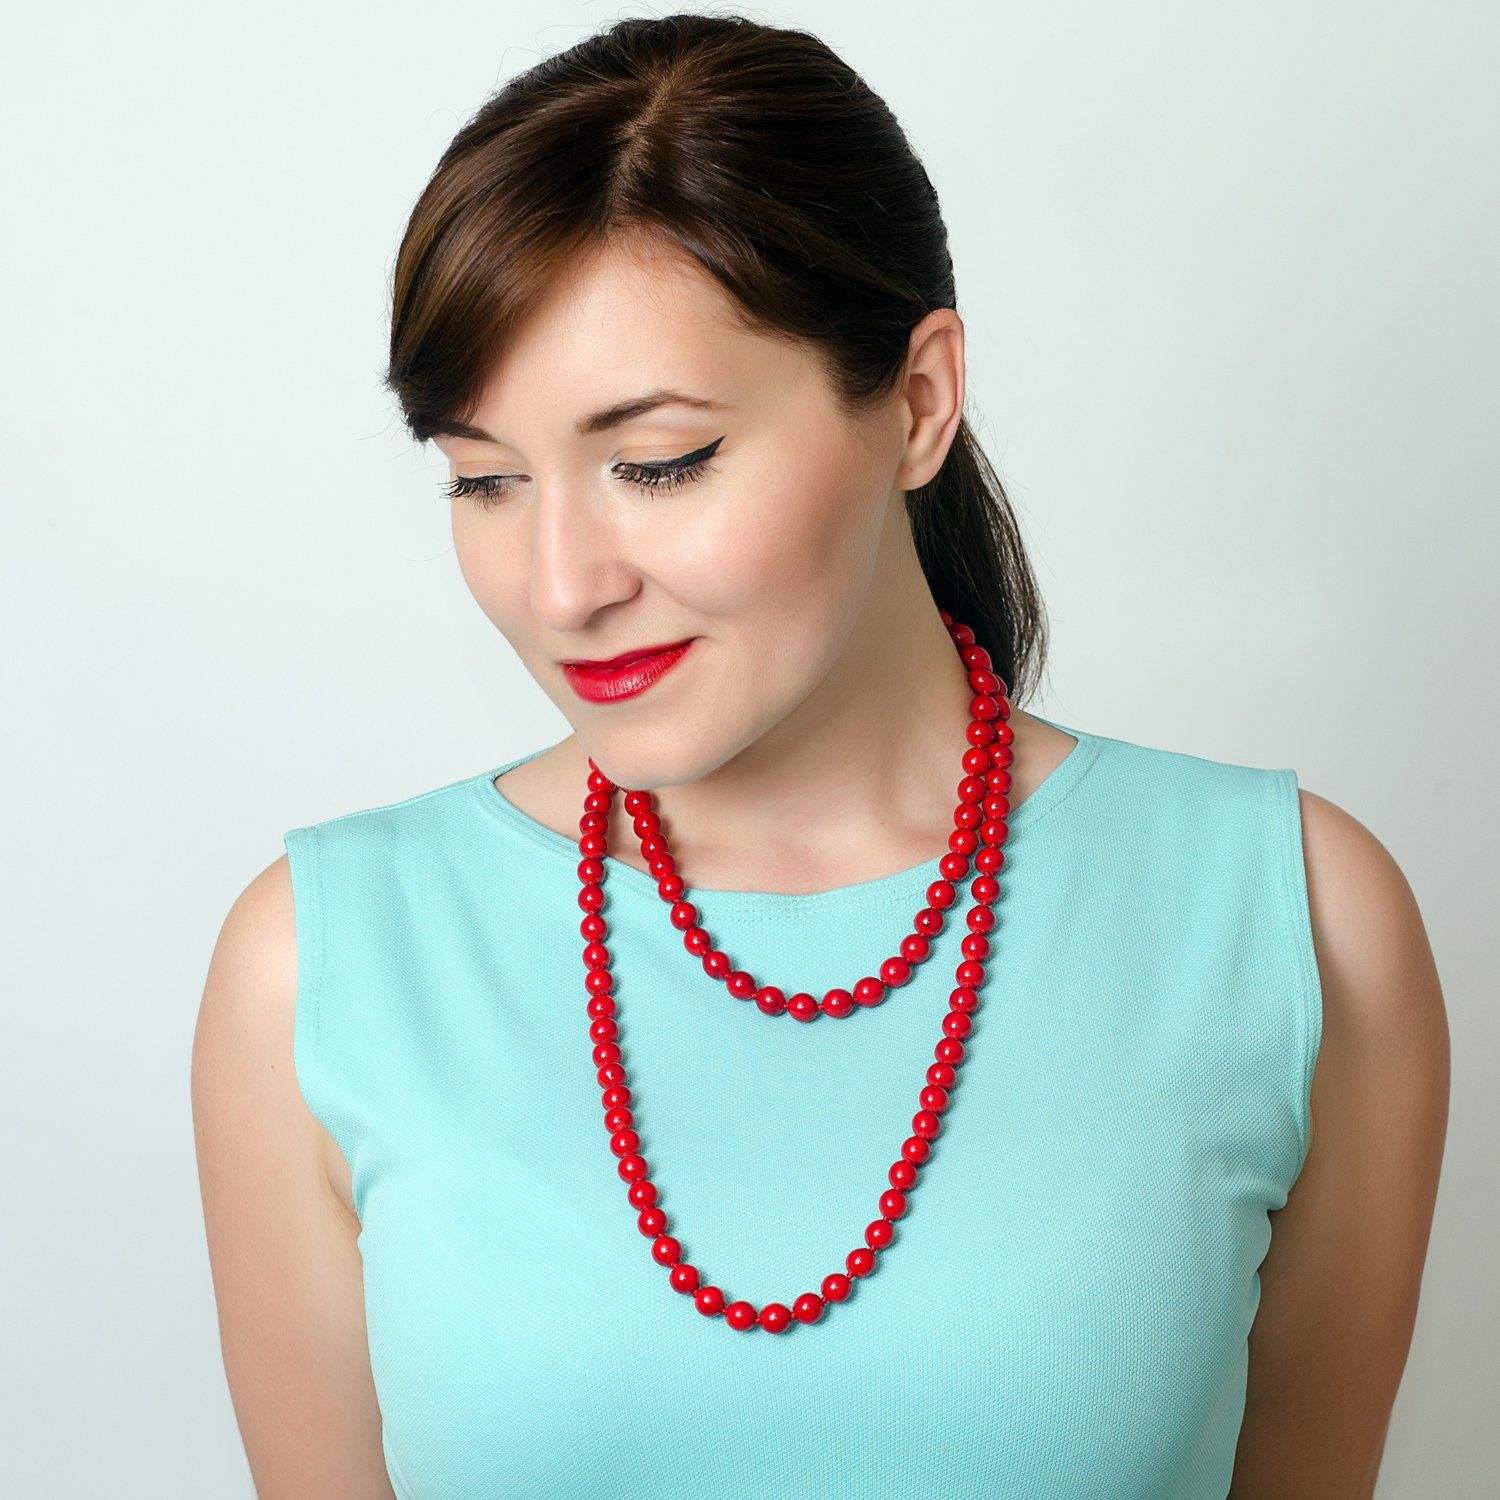 Vintage Style Jewelry, Retro Jewelry Jane Stone Statement Turquoise Bib Round Short Bead Red Double Strand Long Necklace Jewelry for Women Teen Girls $13.99 AT vintagedancer.com